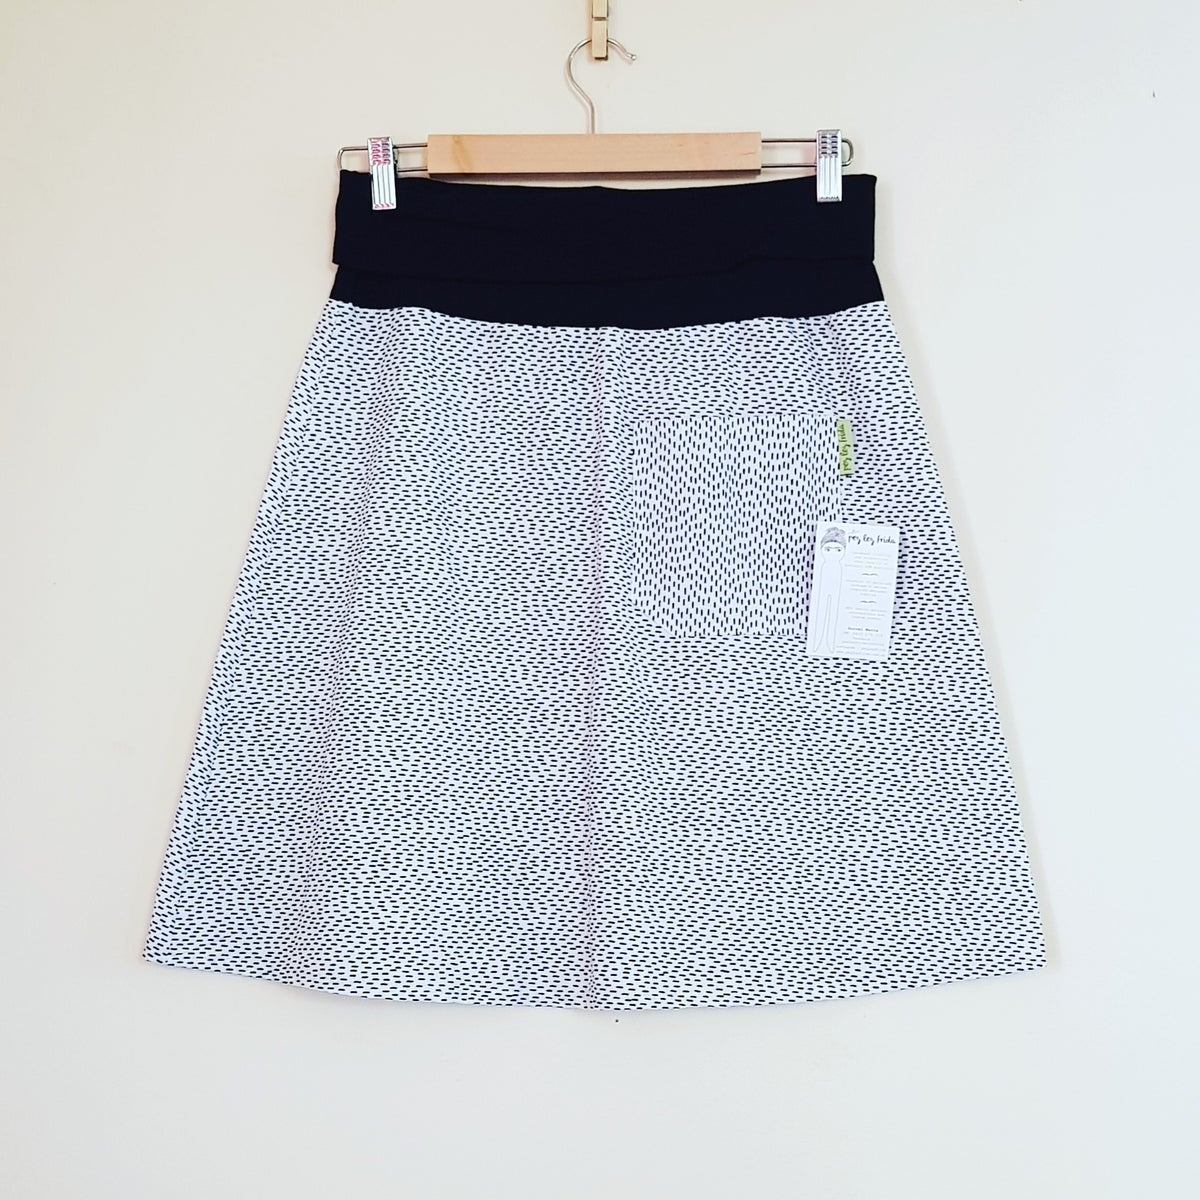 Image of Gus Skirt - Dashes *LAST ONE L*